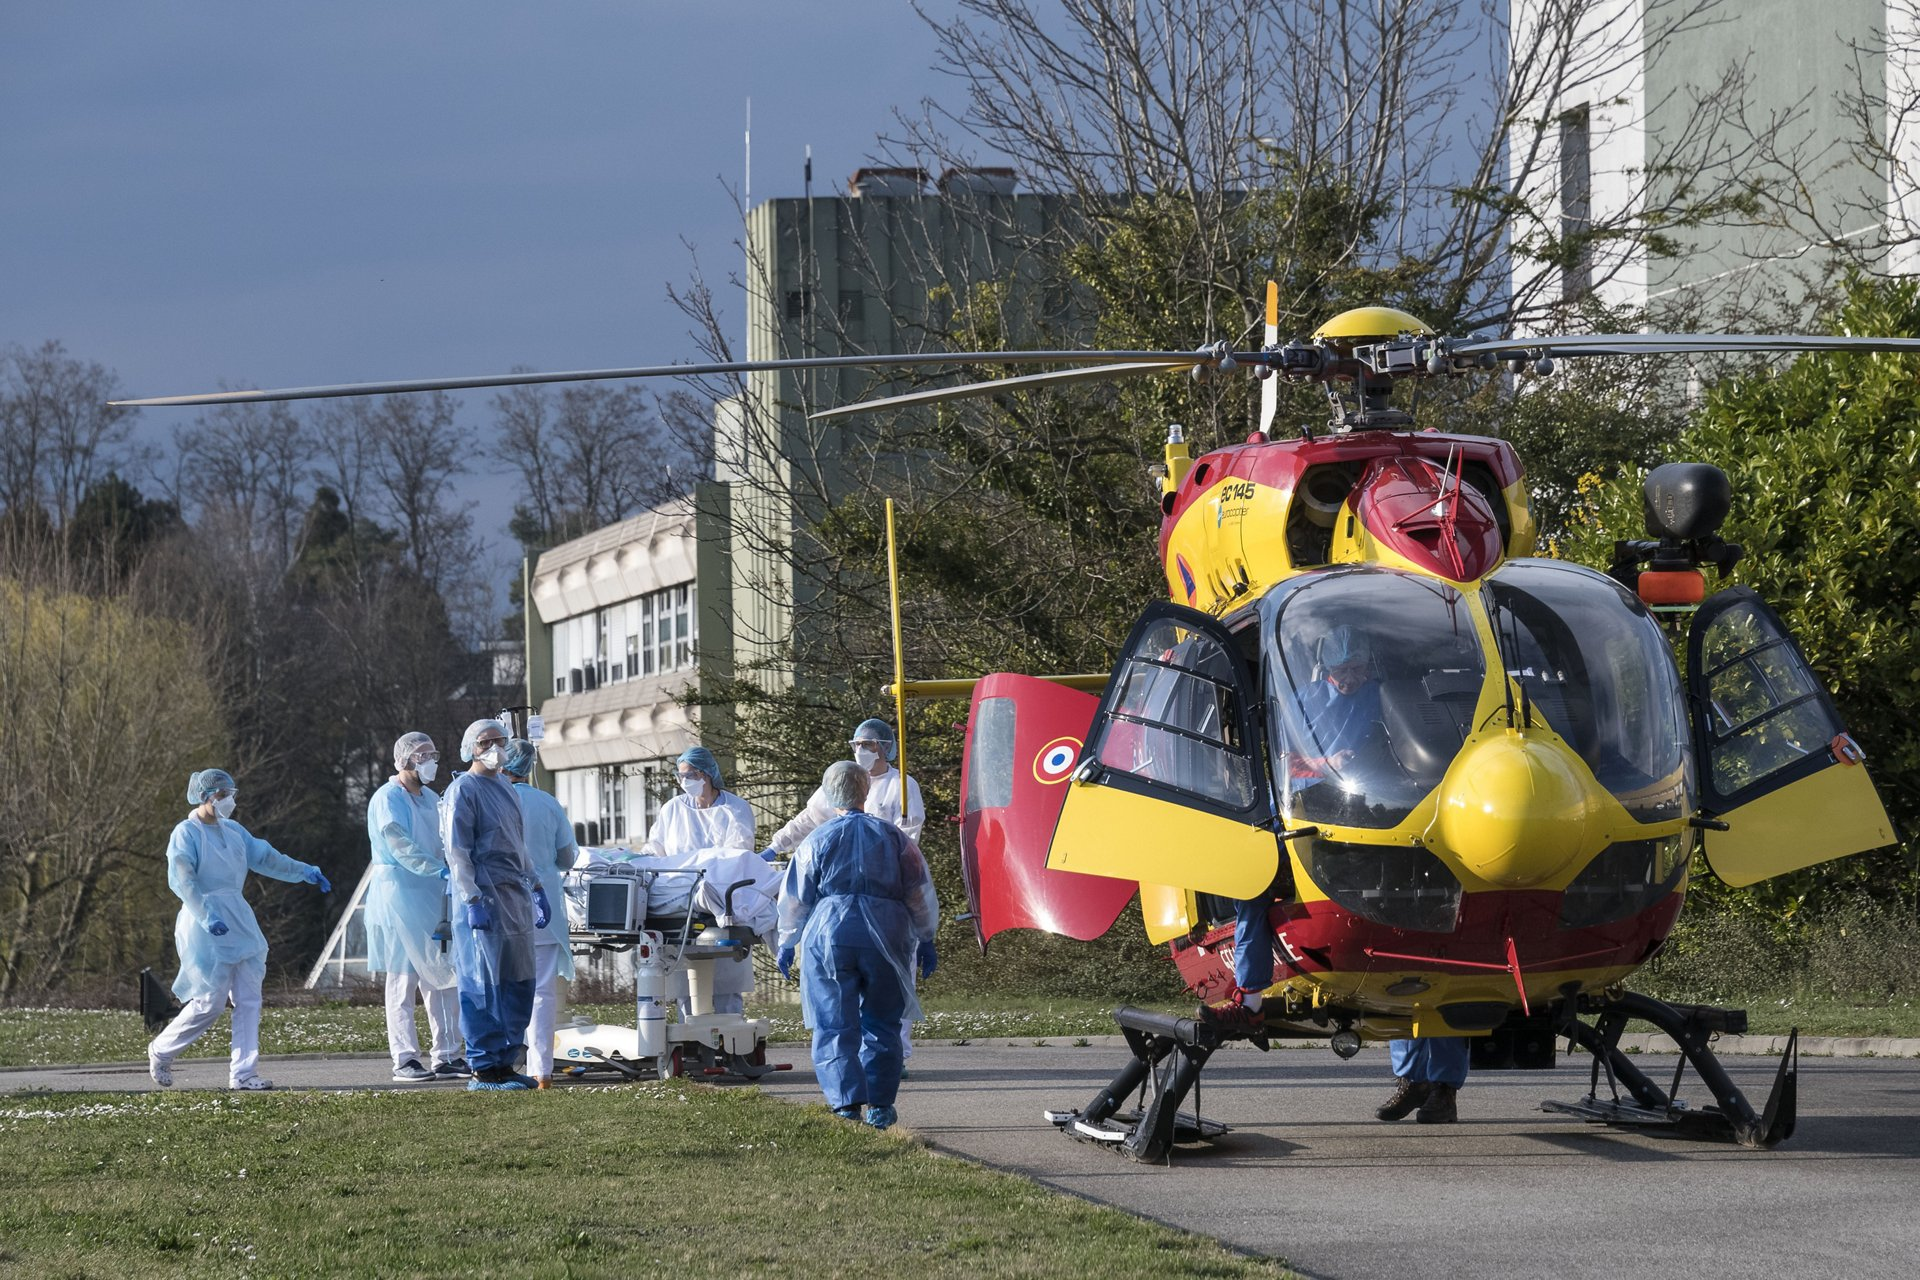 Medical staff push a Covid-19 patient on a gurney to an H145 helicopter at the Emile Muller hospital in Mulhouse, eastern France.